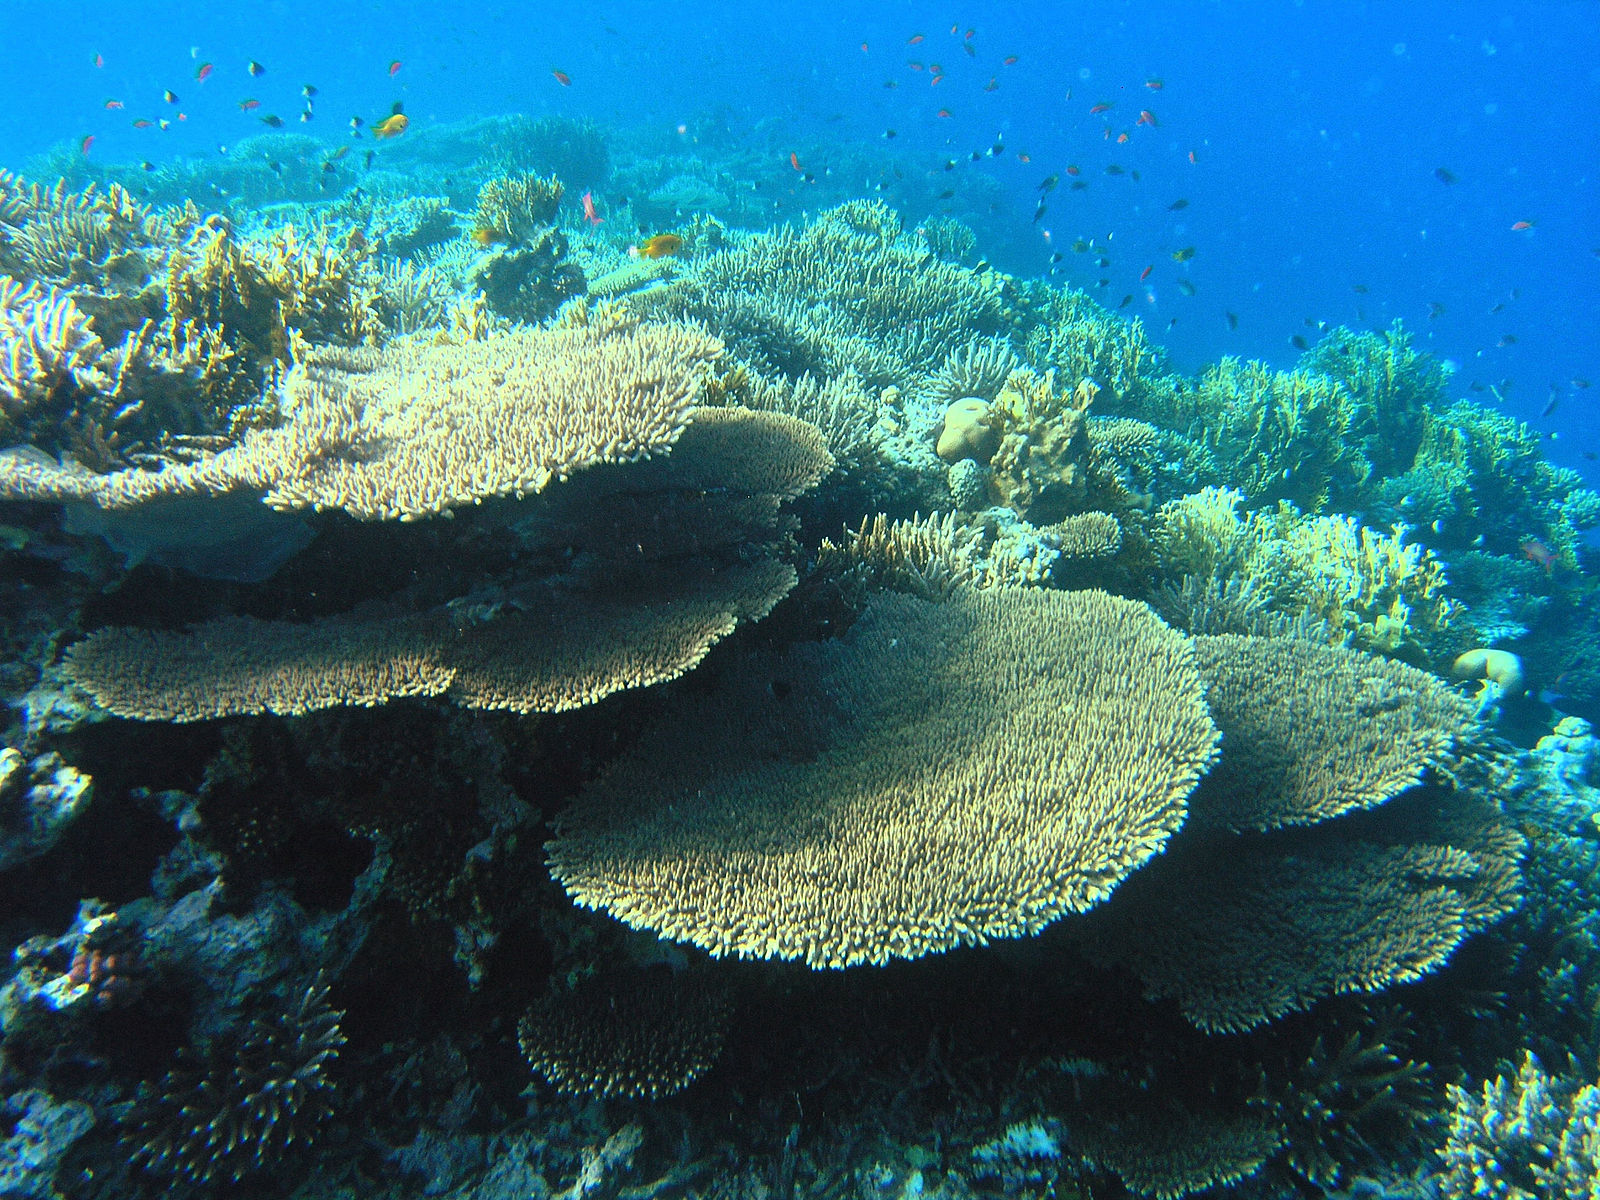 File:Coral Reef in the Red Sea.JPG